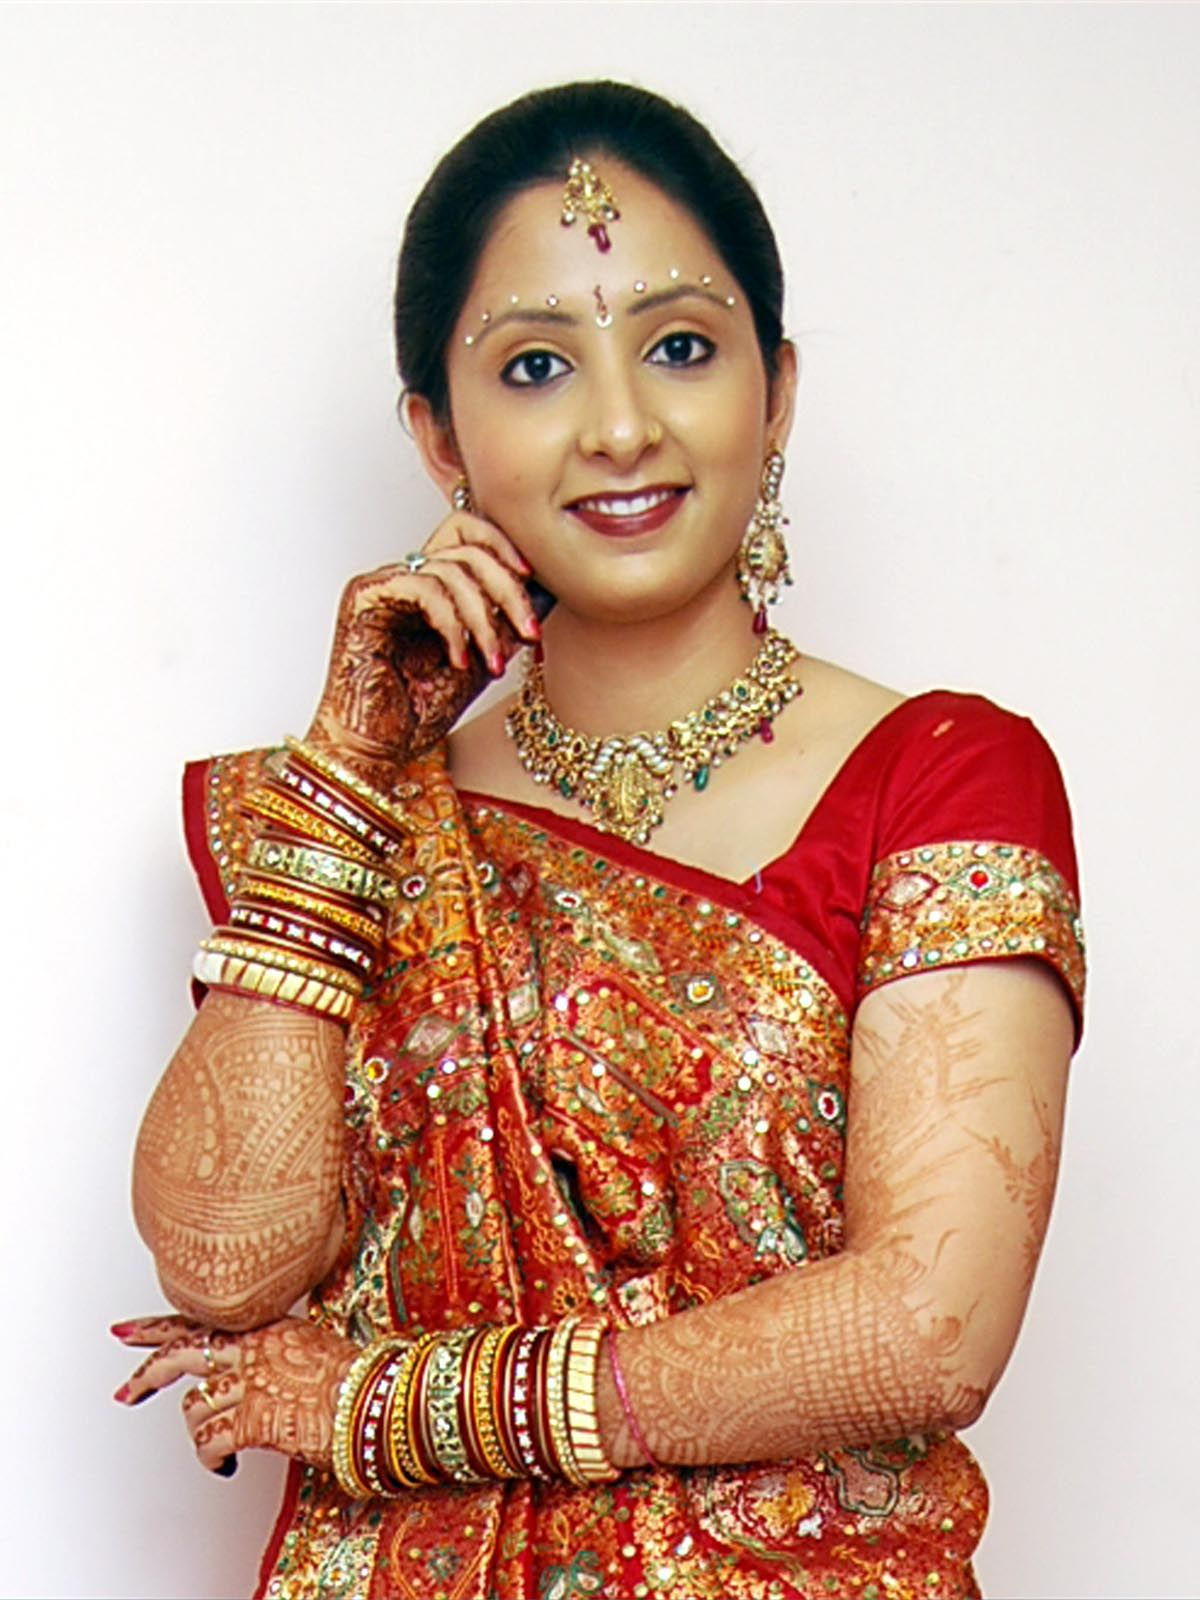 Traditional Indian Wedding Ceremonies Are Expensive In Fact There Is No Such Thing As A Small Scale The Term Big Fat